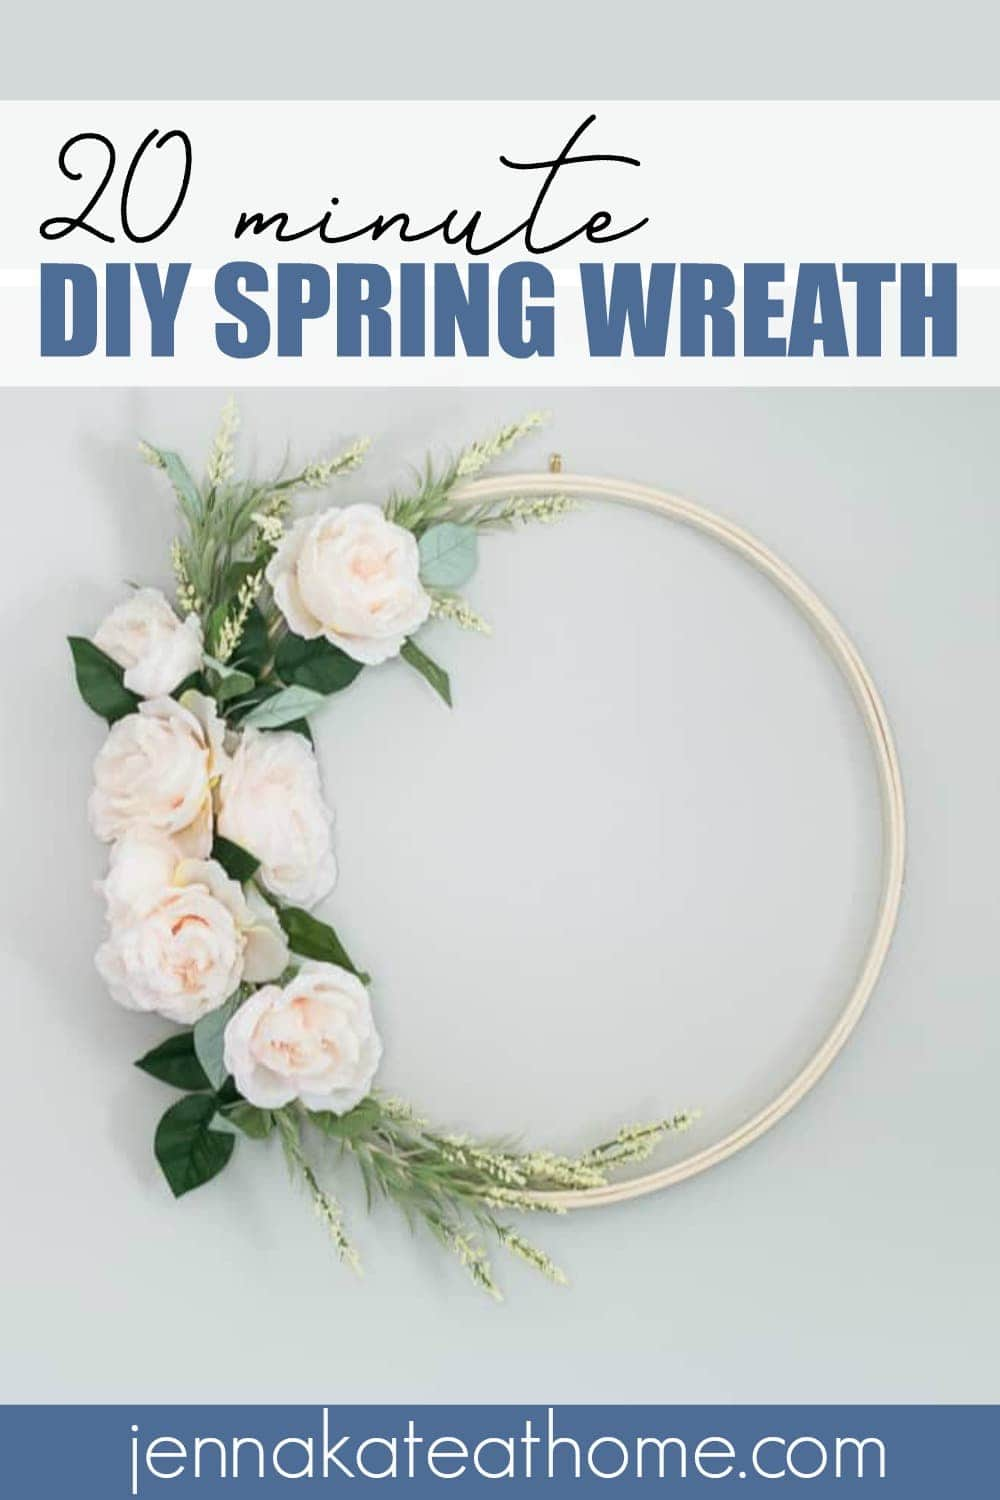 This easy DIY spring wreath takes only 20 minutes to make and will look perfect on your front door or anywhere in your home!